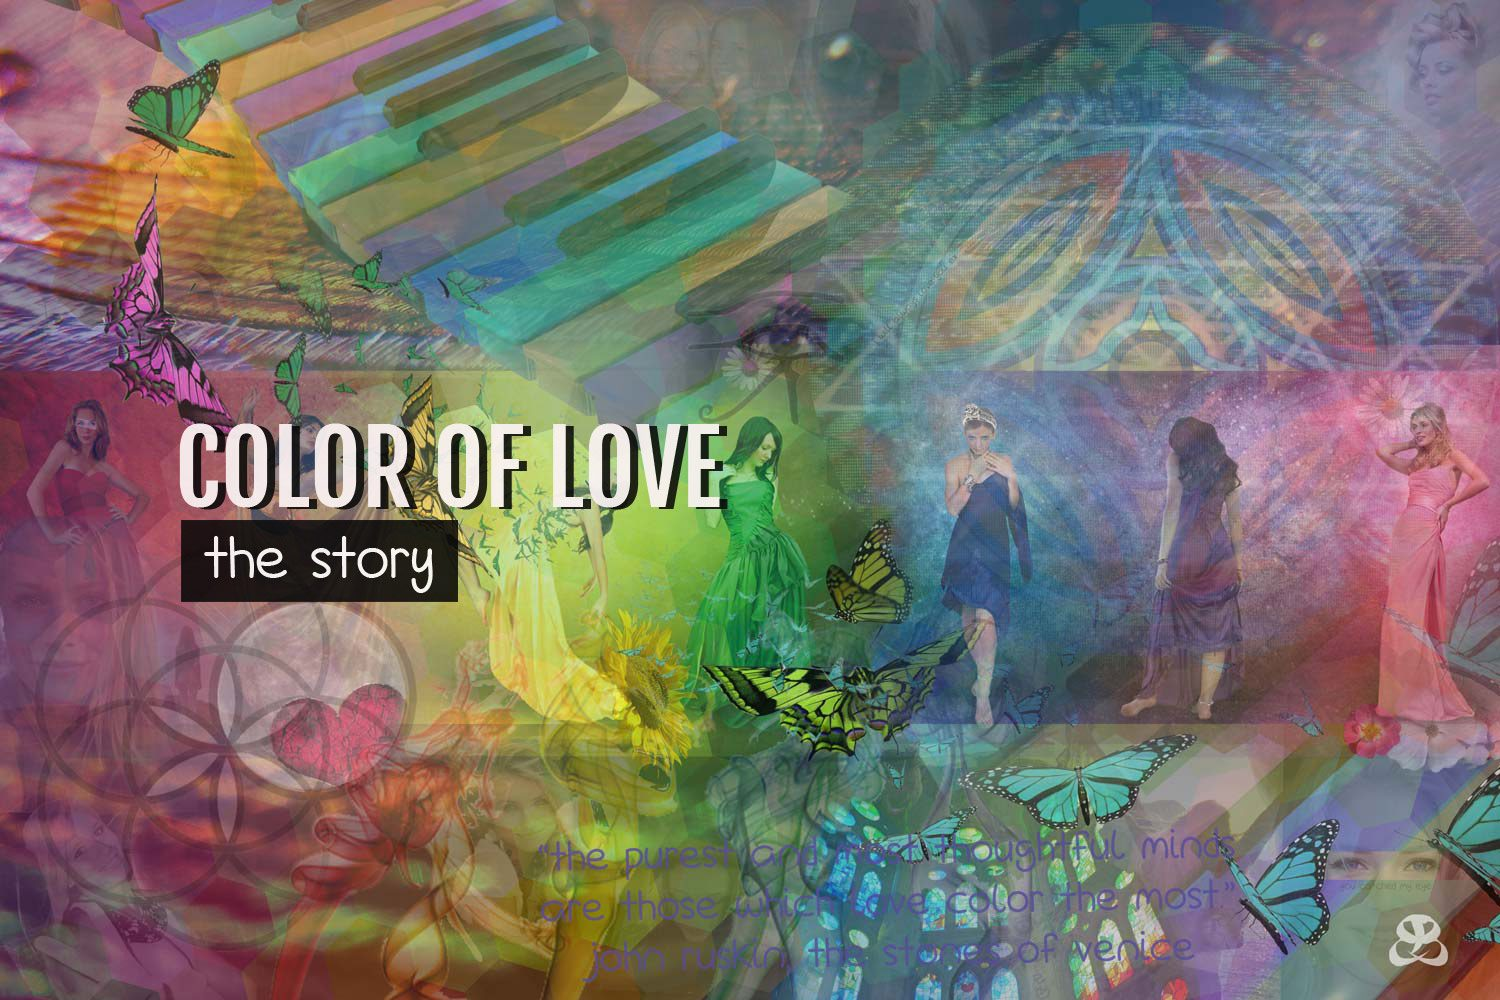 DIGITAL ART AMSTERDAM - Art Story COLOR OF LOVE